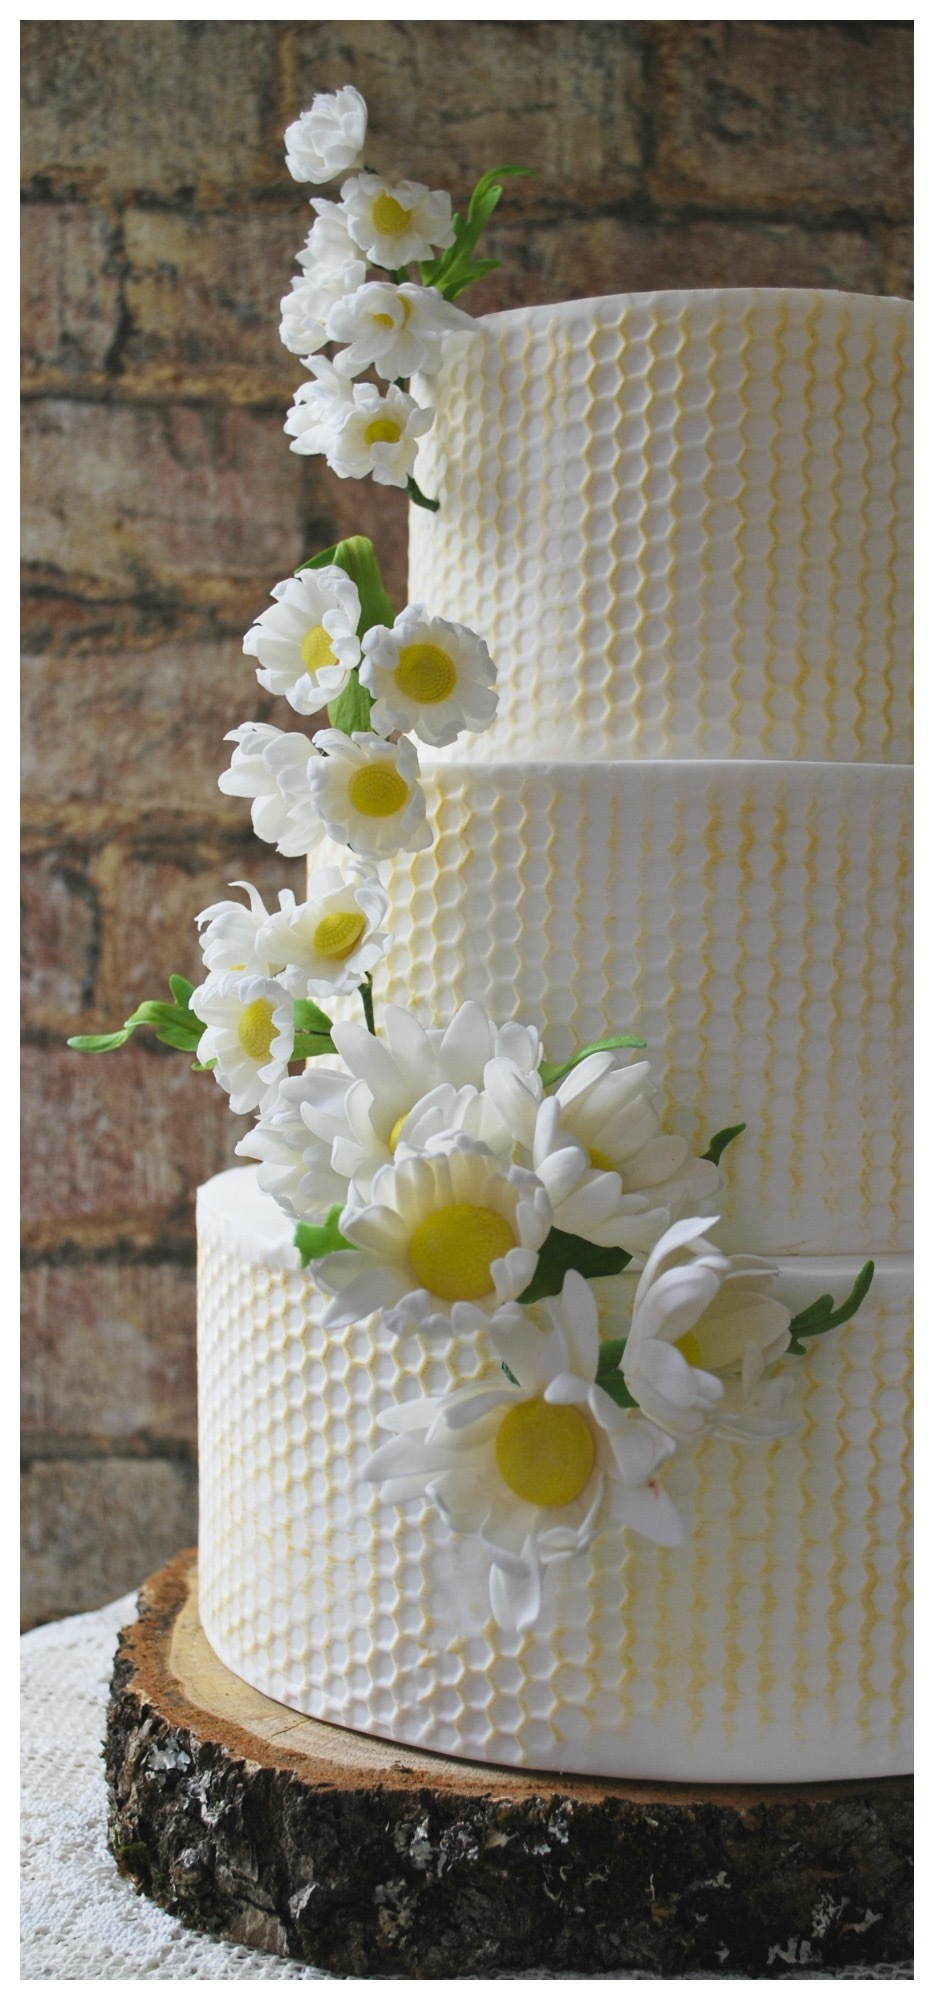 White with yellow honeycomb patterned wedding